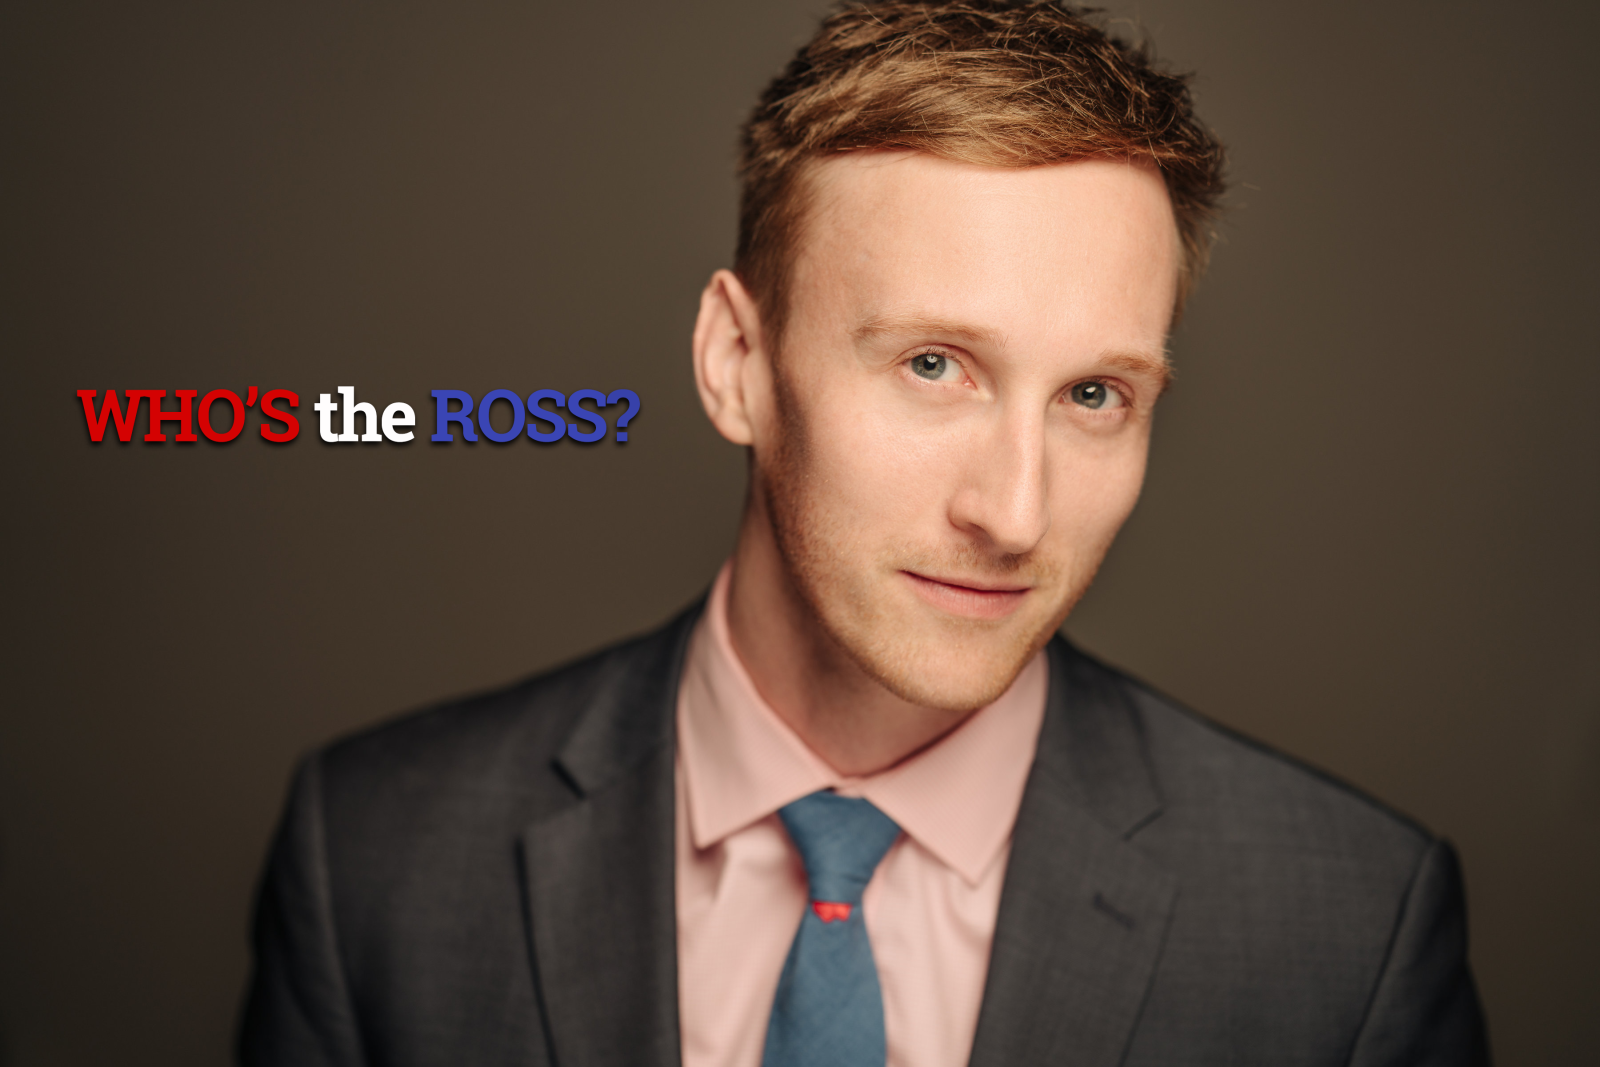 WHO'S the ROSS? Aaron Ross comedian comedy Portland talk show late-night actor